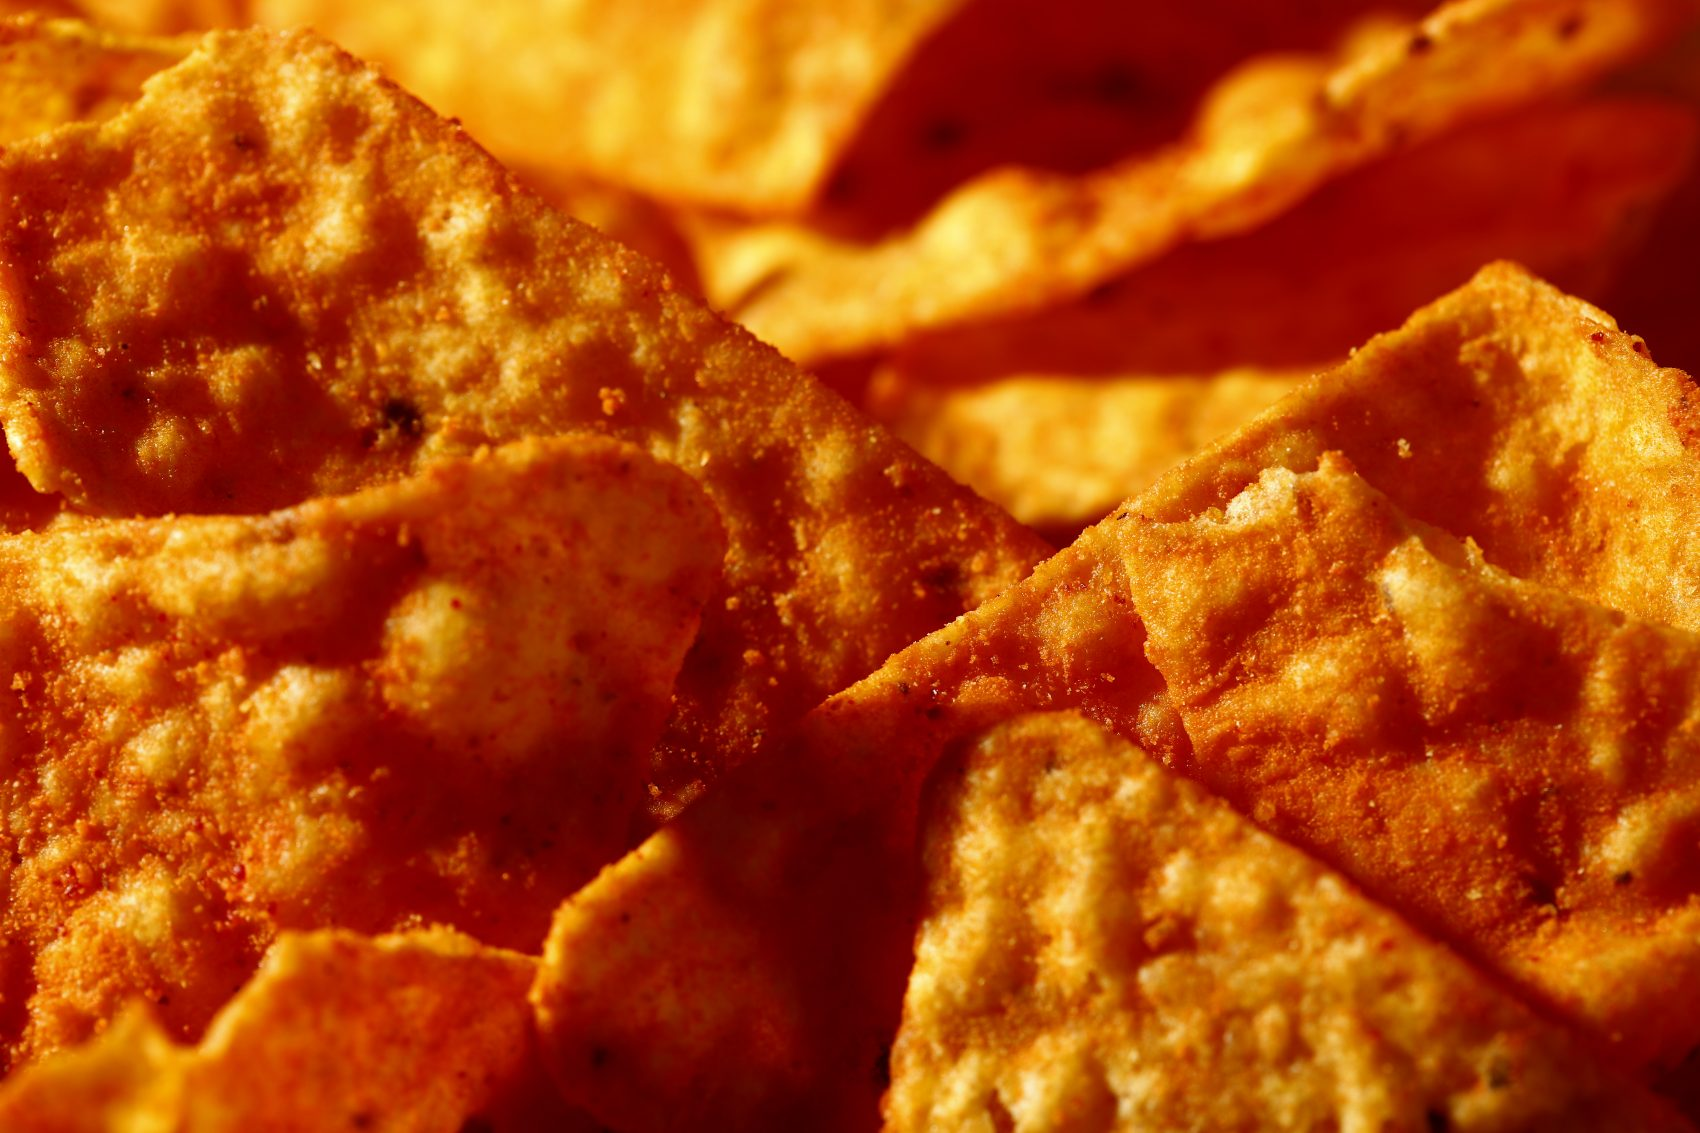 """This file photo shows Nacho Cheese flavored Doritos in Philadelphia. Don't expect to see """"lady Doritos"""" on store shelves. The company that makes the cheesy chips said Tuesday, Feb. 6, 2018, that it's not developing a line of Doritos designed specifically for women, despite widespread online speculation that it was. (Matt Rourke/AP)"""